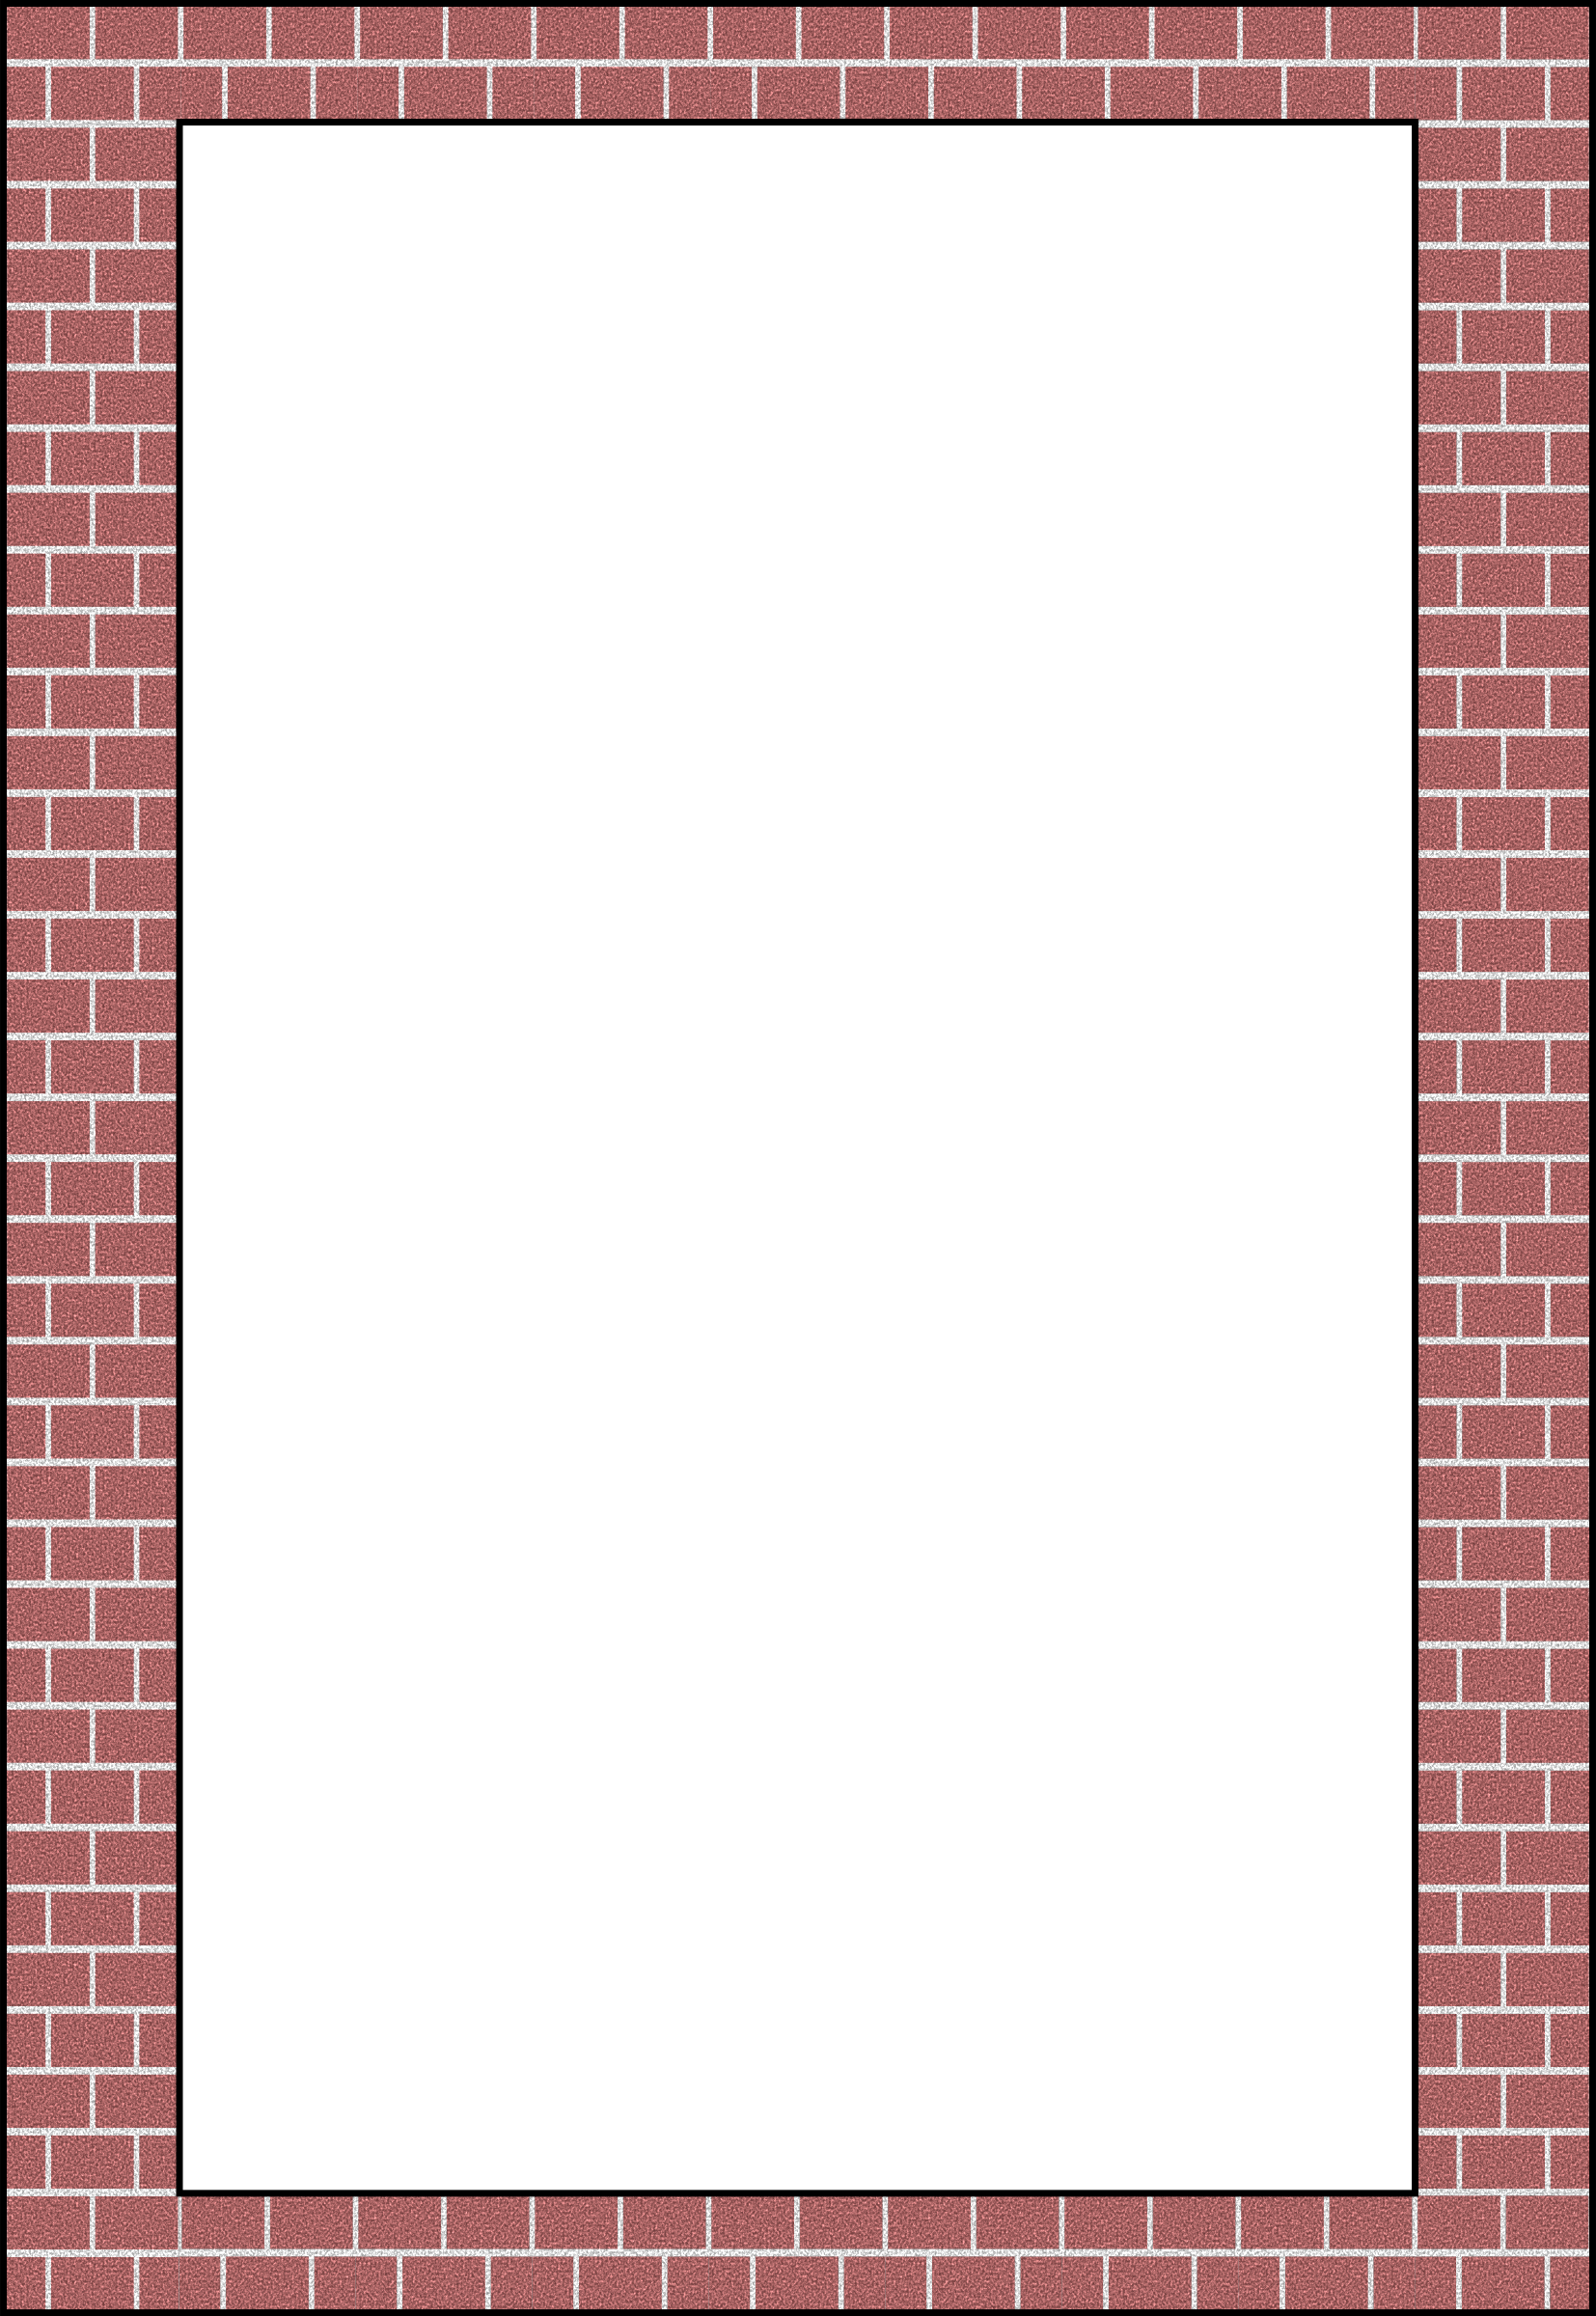 Brick Border by Arvin61r58